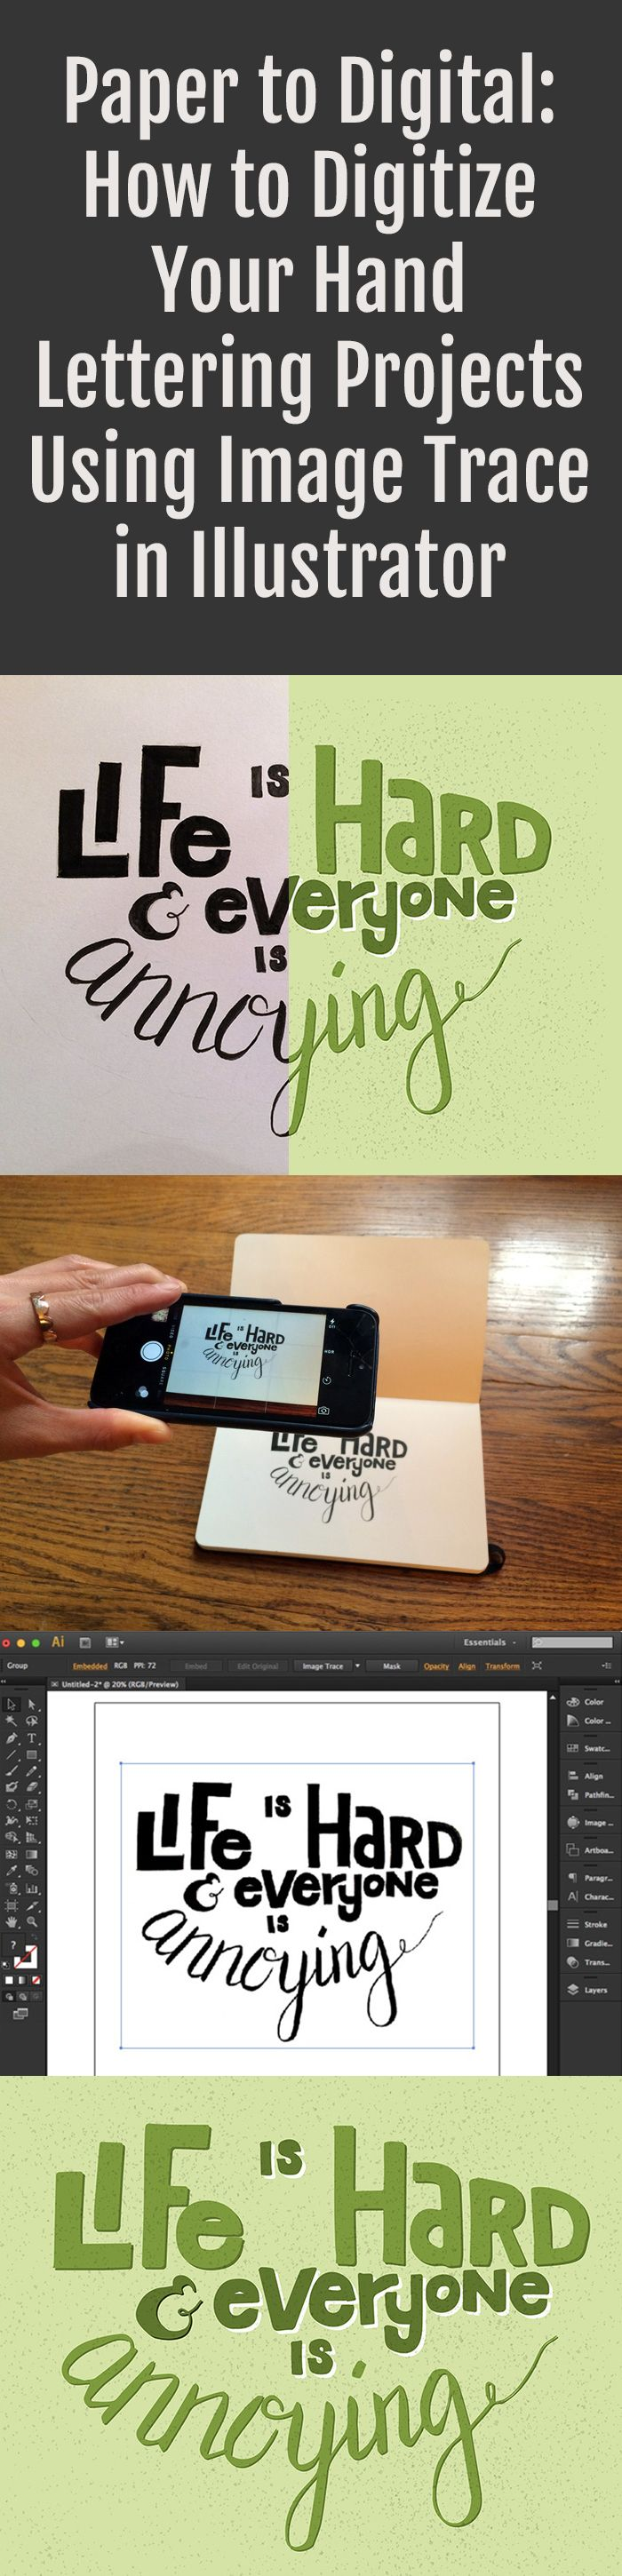 heres a full paper to digital tutorial on how to take your hand lettering projects and